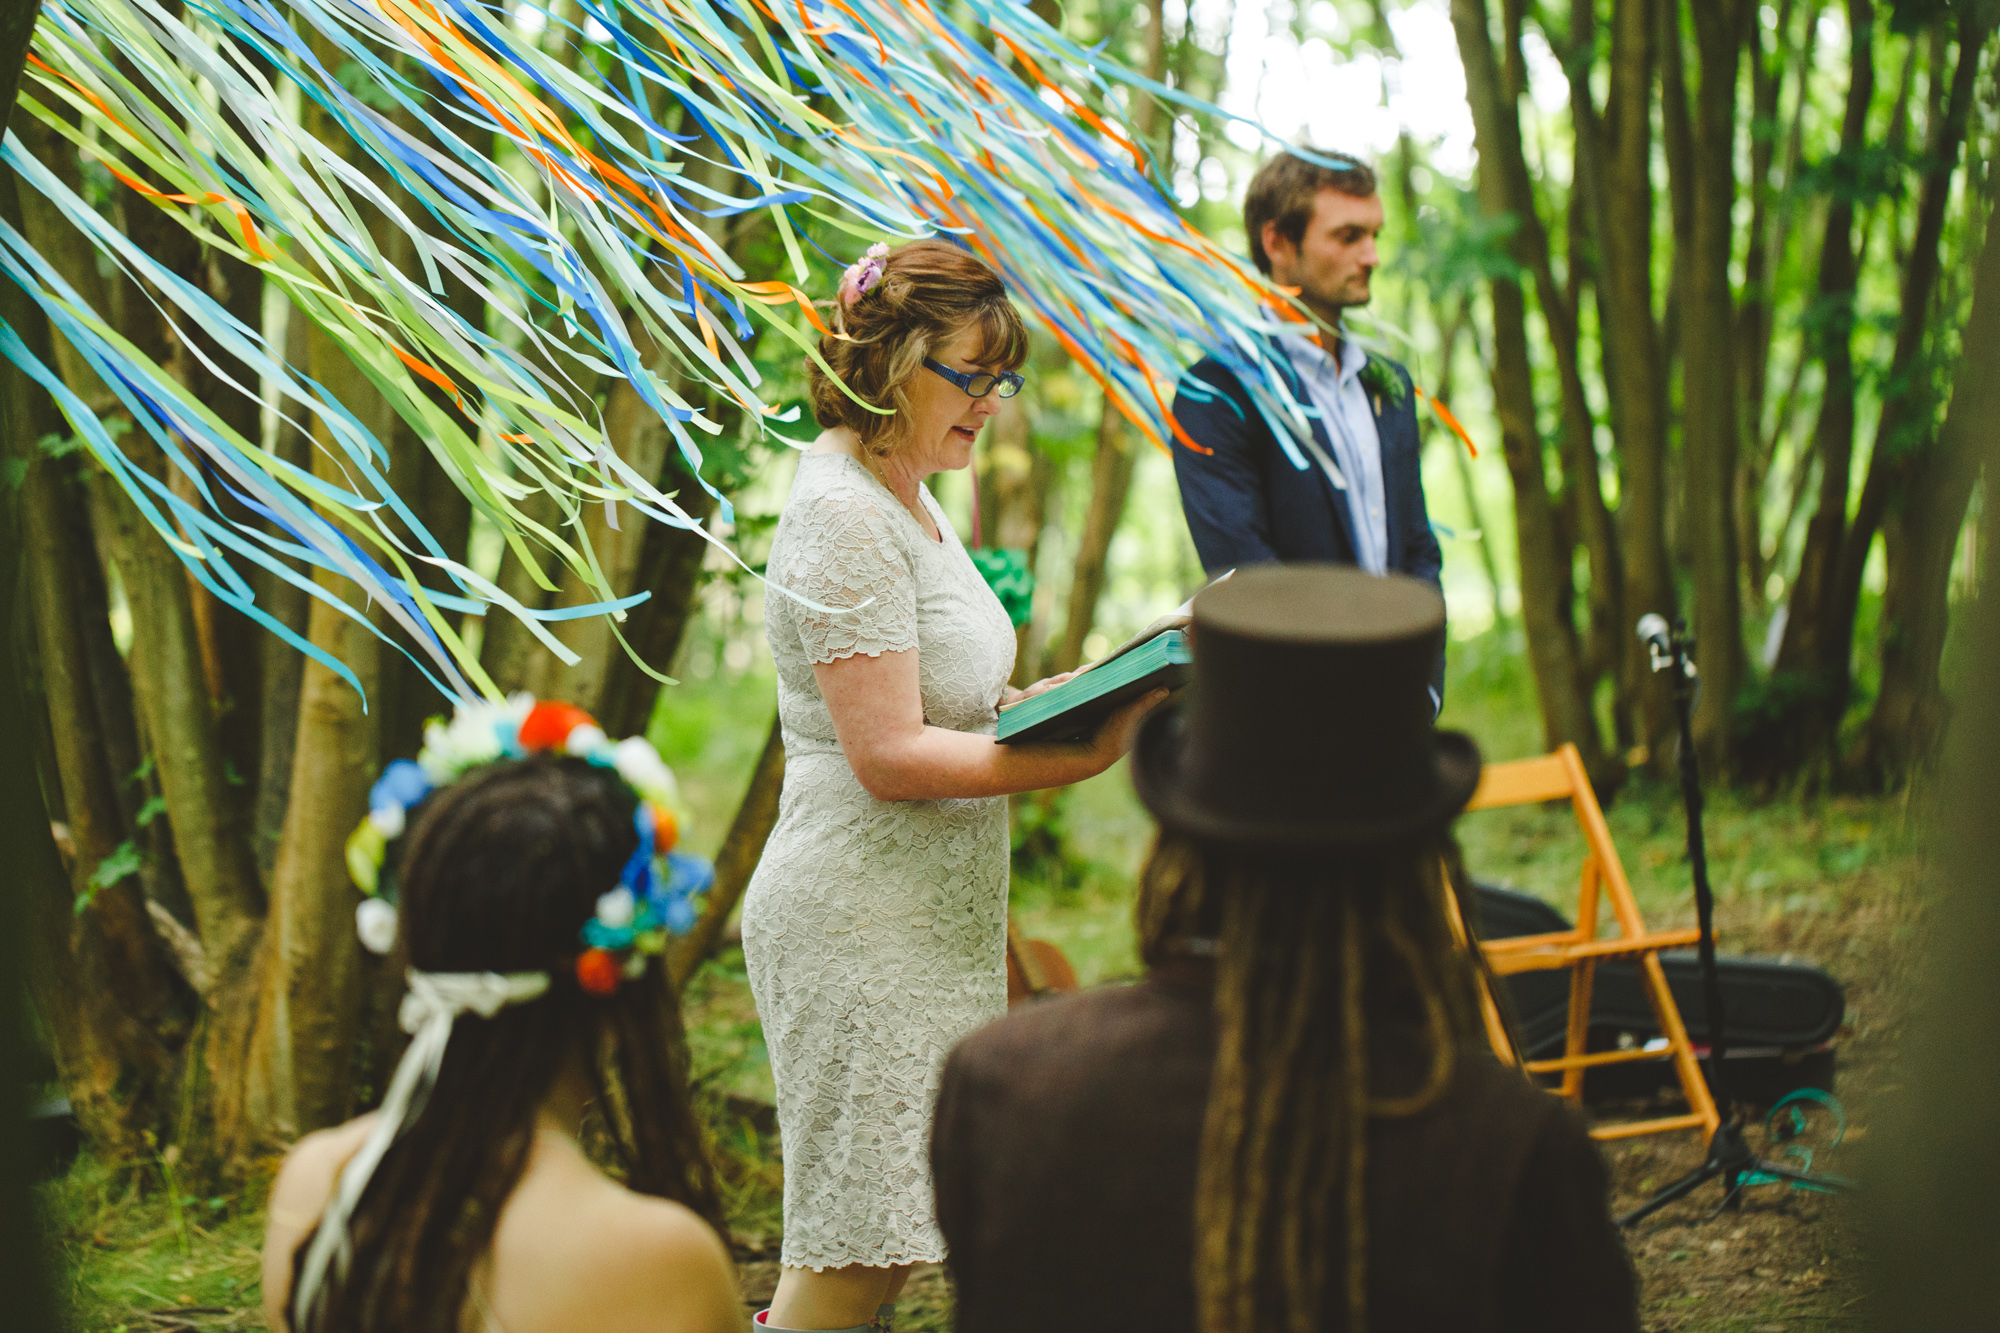 alternative-wedding-photographer-uk-camera-hannah-8.jpg